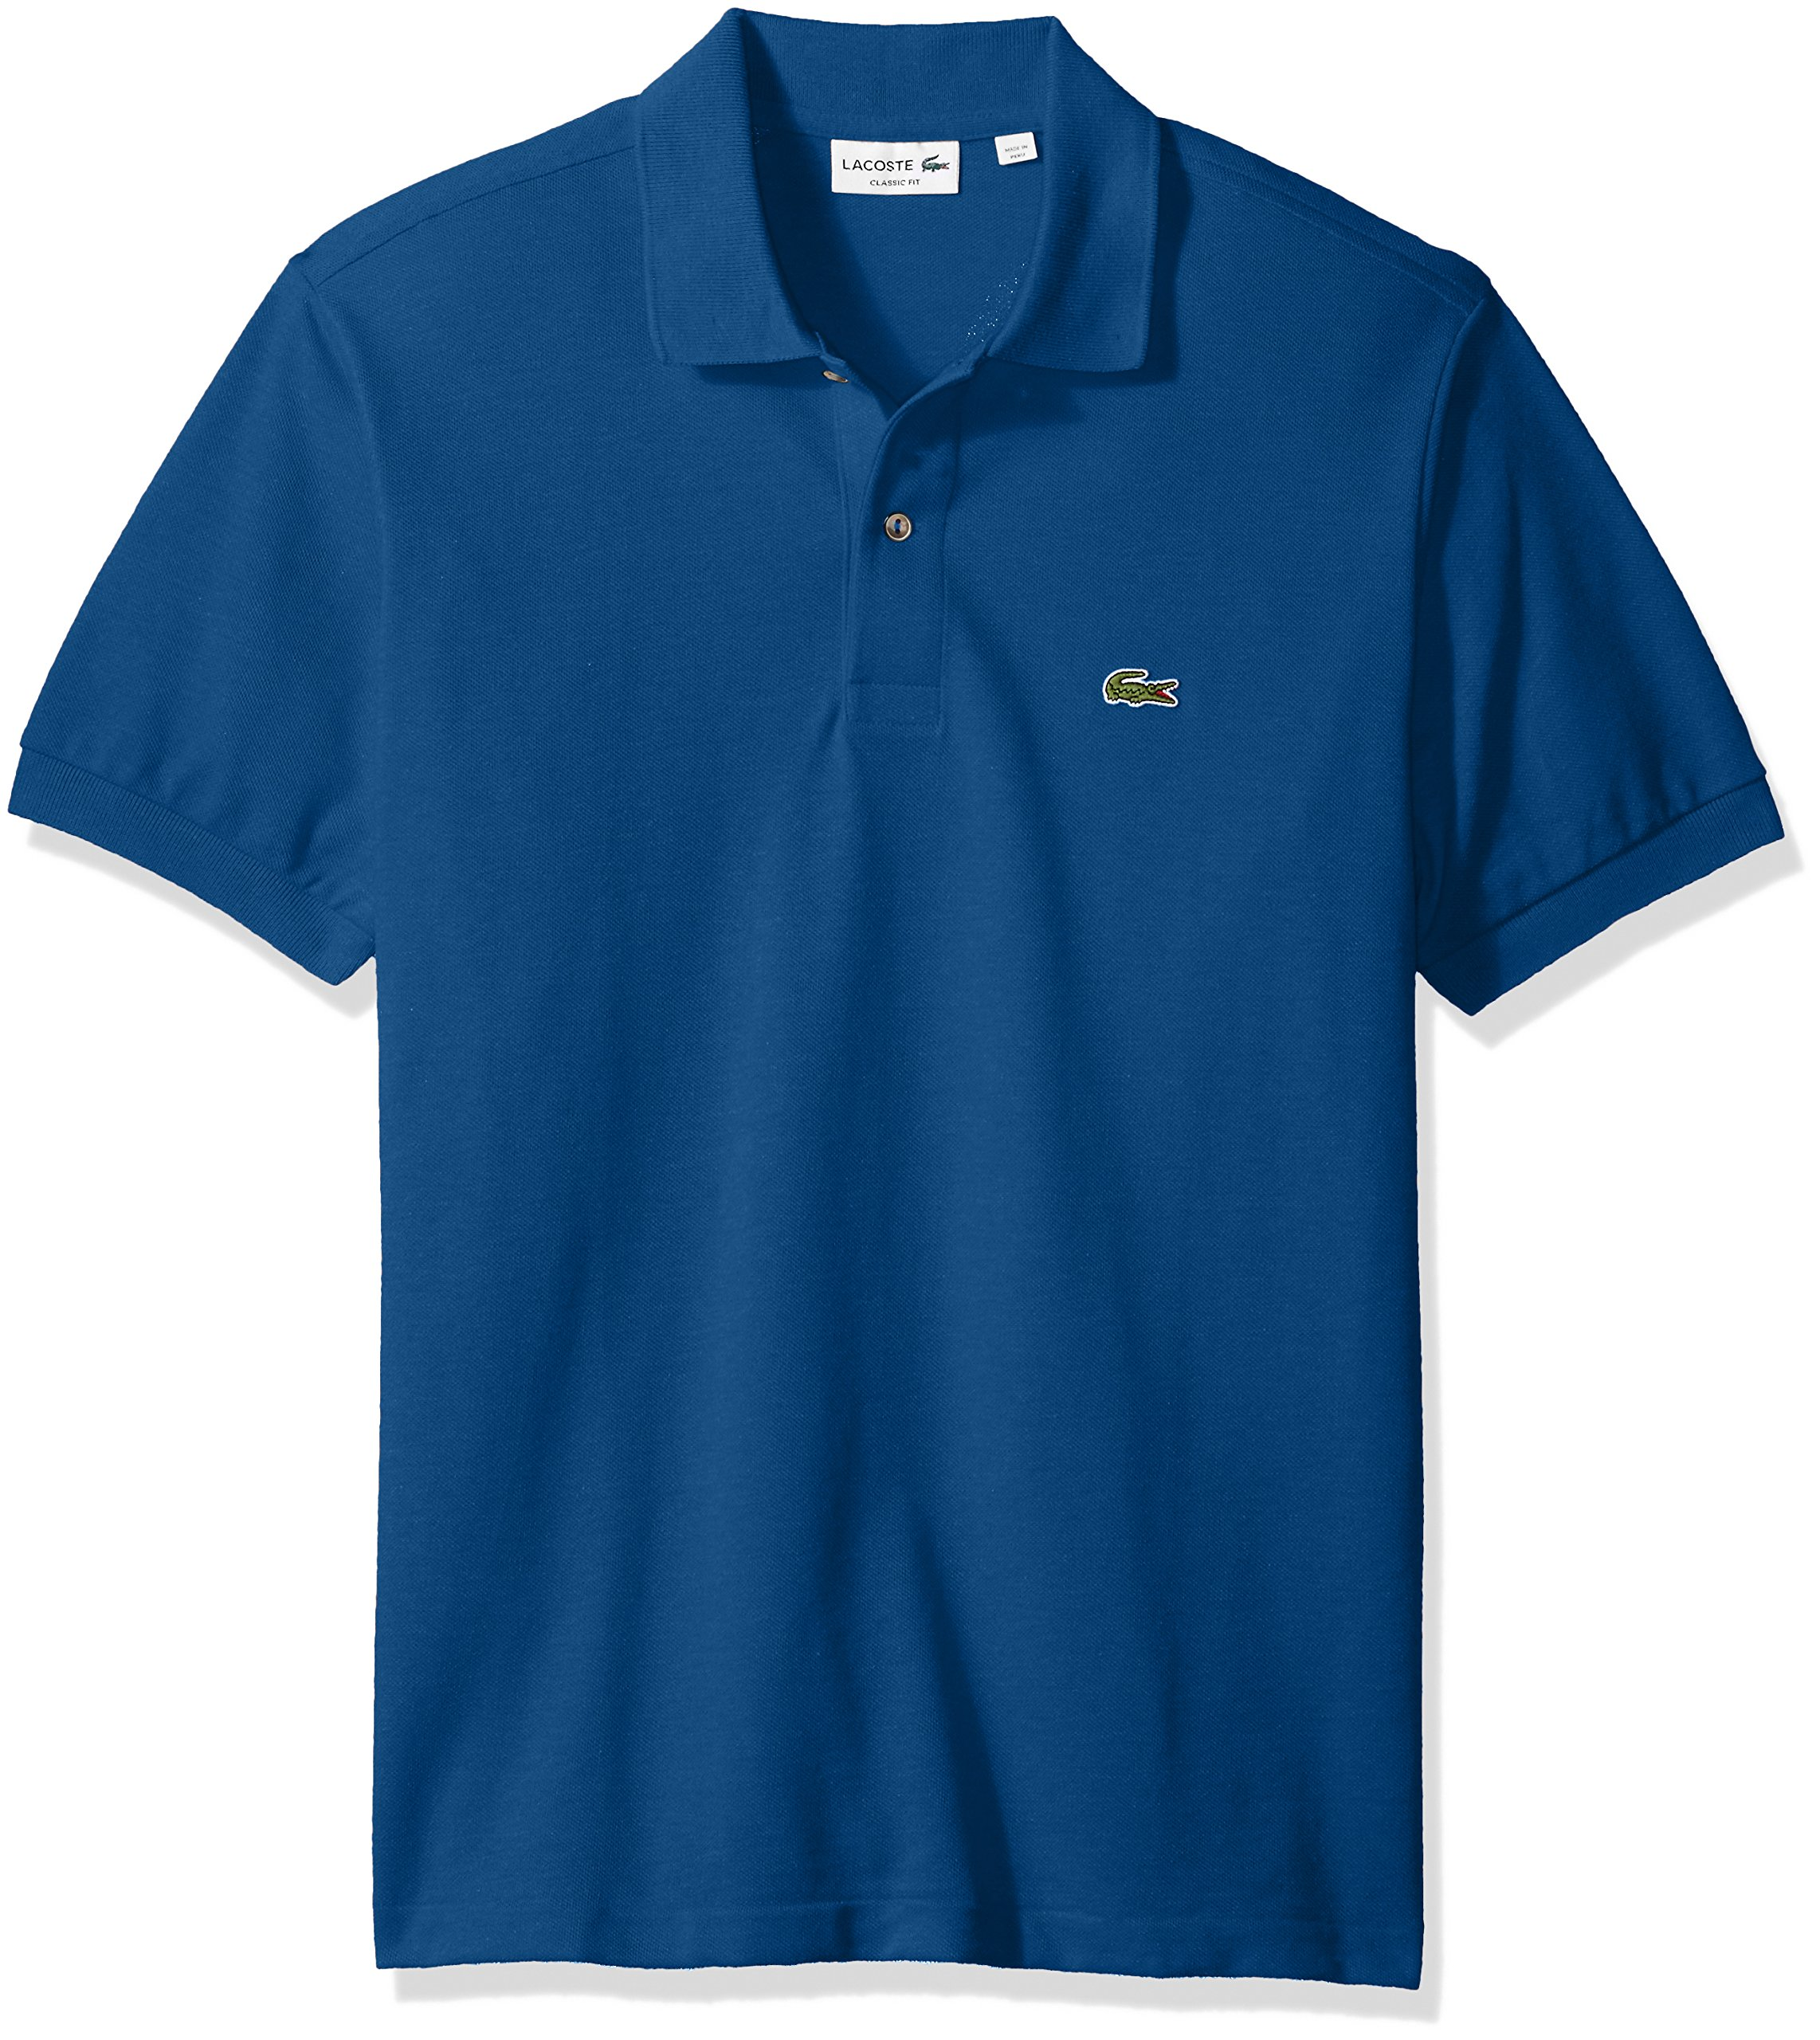 9b1407261 Galleon - Lacoste Men's Short Sleeve Pique Classic Fit Chine Polo Shirt,  L1264, Olmeto Blue, 7